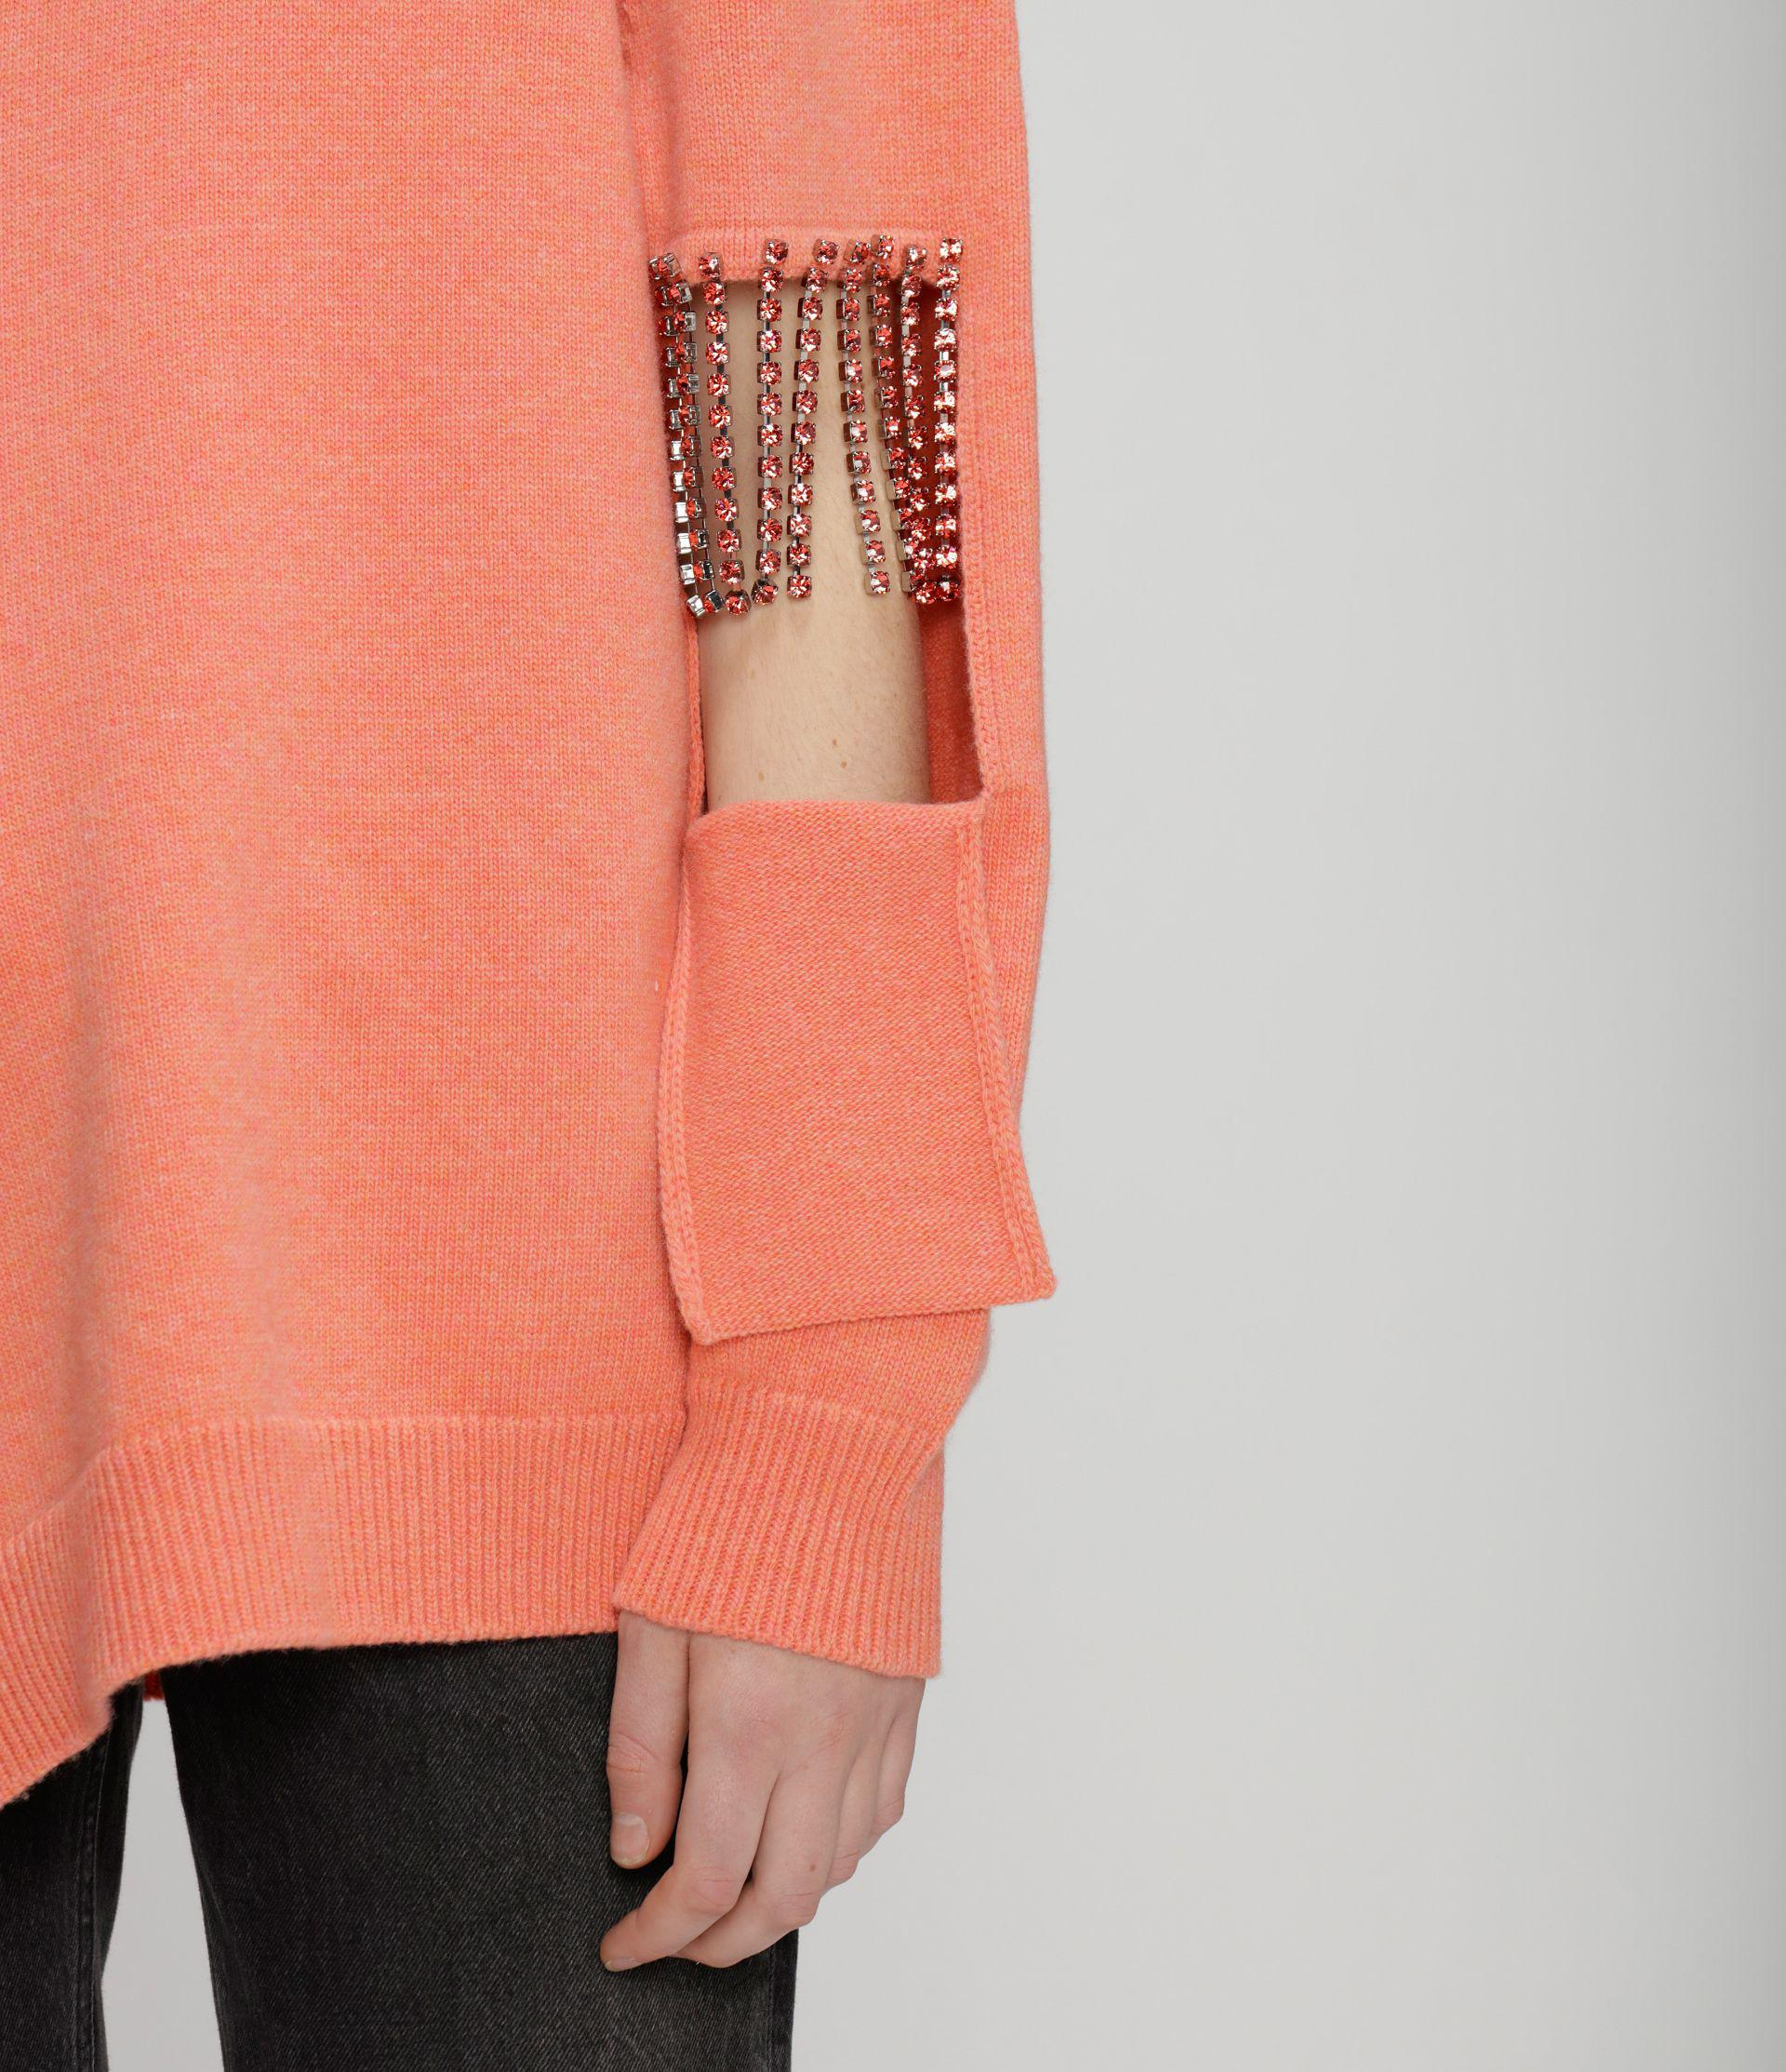 cut-out cupchain knitted sweater 5